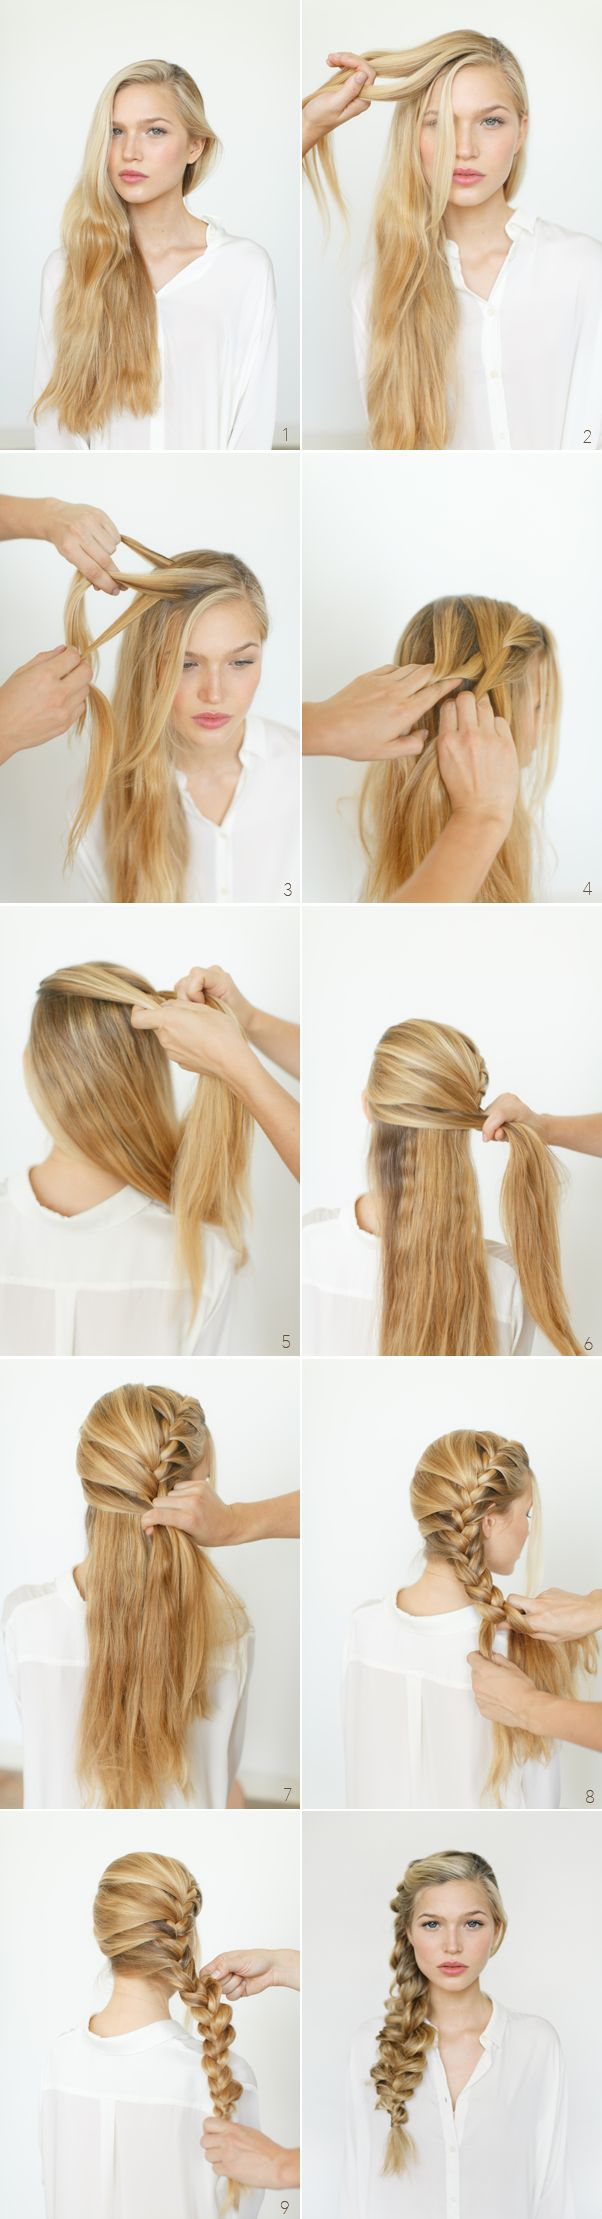 17 Romantic Hairstyle Ideas and Tutorials for the Aphrodite cabin